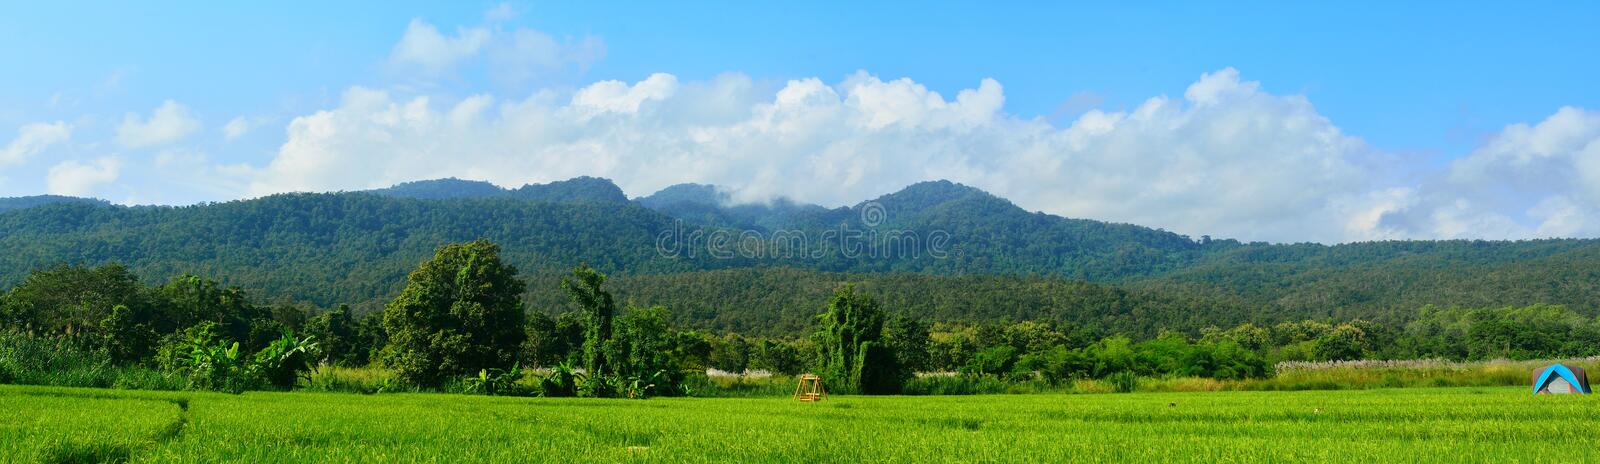 Beautifull view on rice fields in chiangmai, thailand. royalty free stock photography